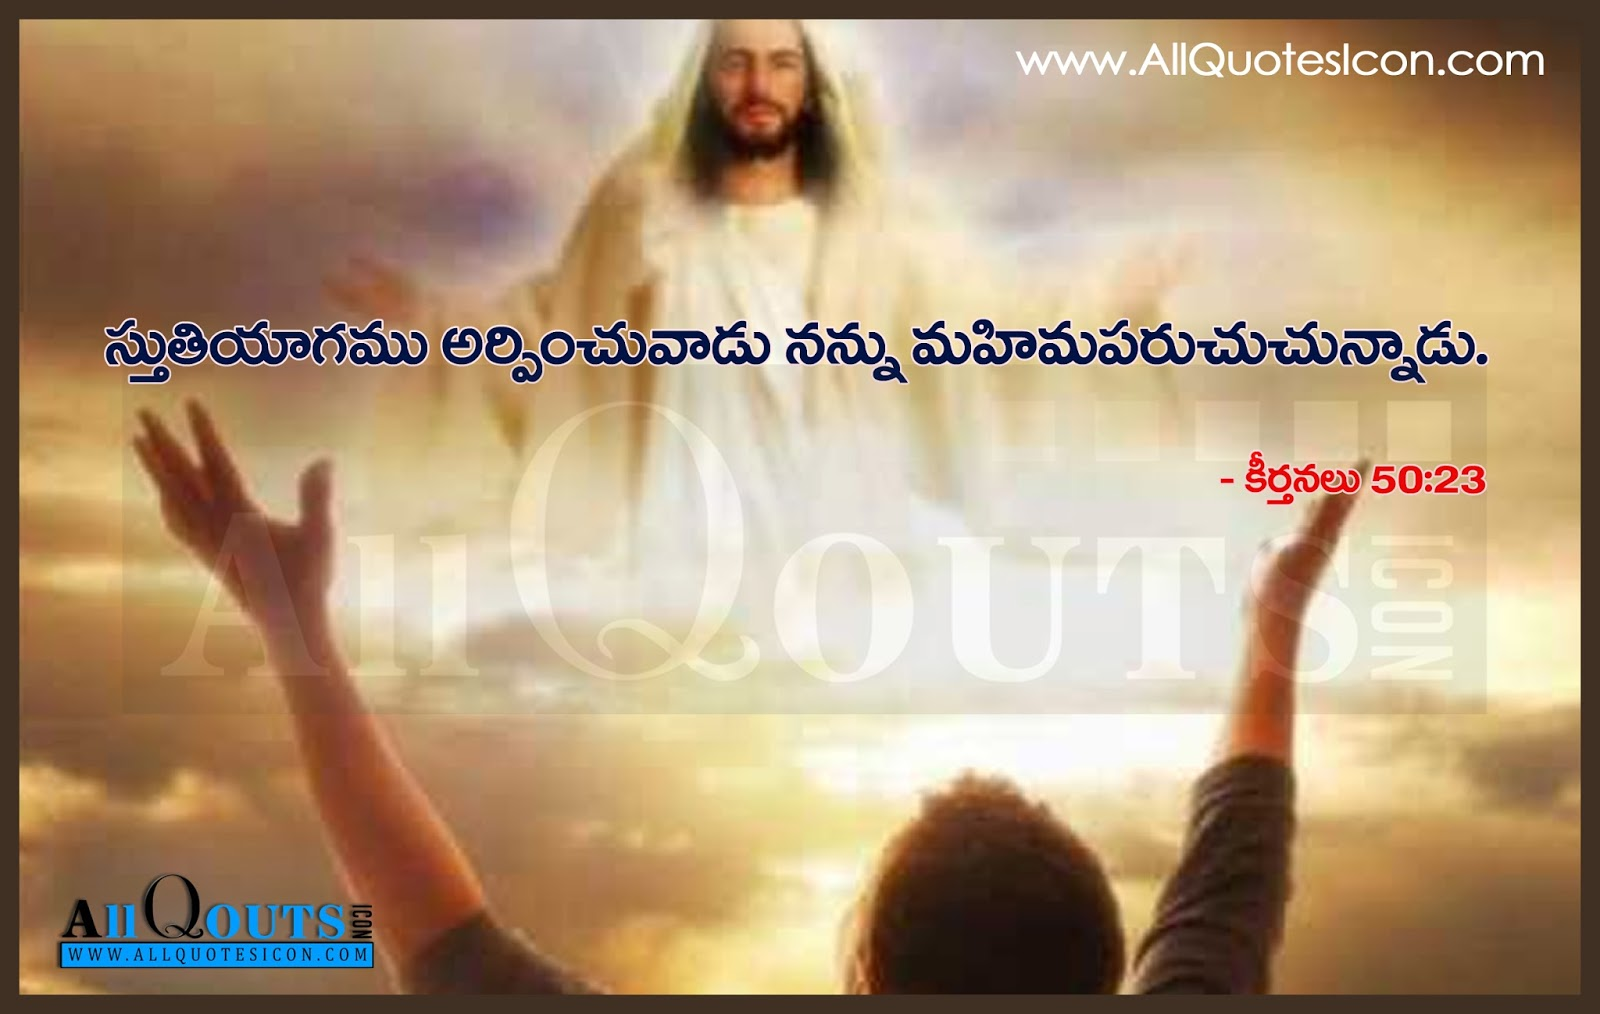 Jesus Quotes On Love Jesus Quotes In Telugu Hd Wallpapers Top Bible Verses Telugu